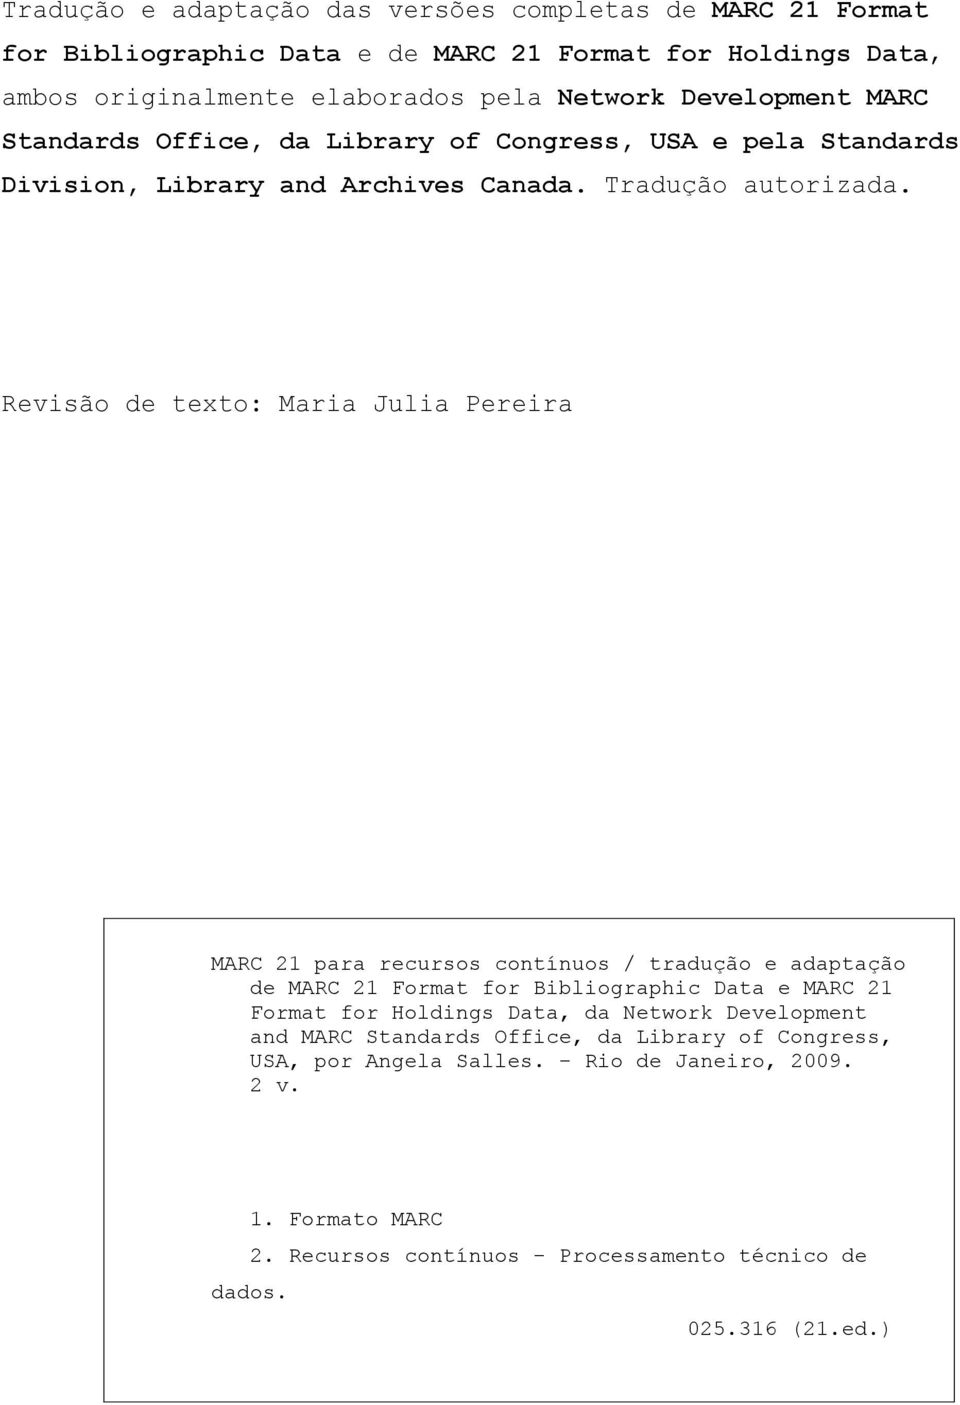 Revisão de texto: Maria Julia Pereira MARC 21 para recursos contínuos / tradução e adaptação de MARC 21 Format for Bibliographic Data e MARC 21 Format for Holdings Data, da